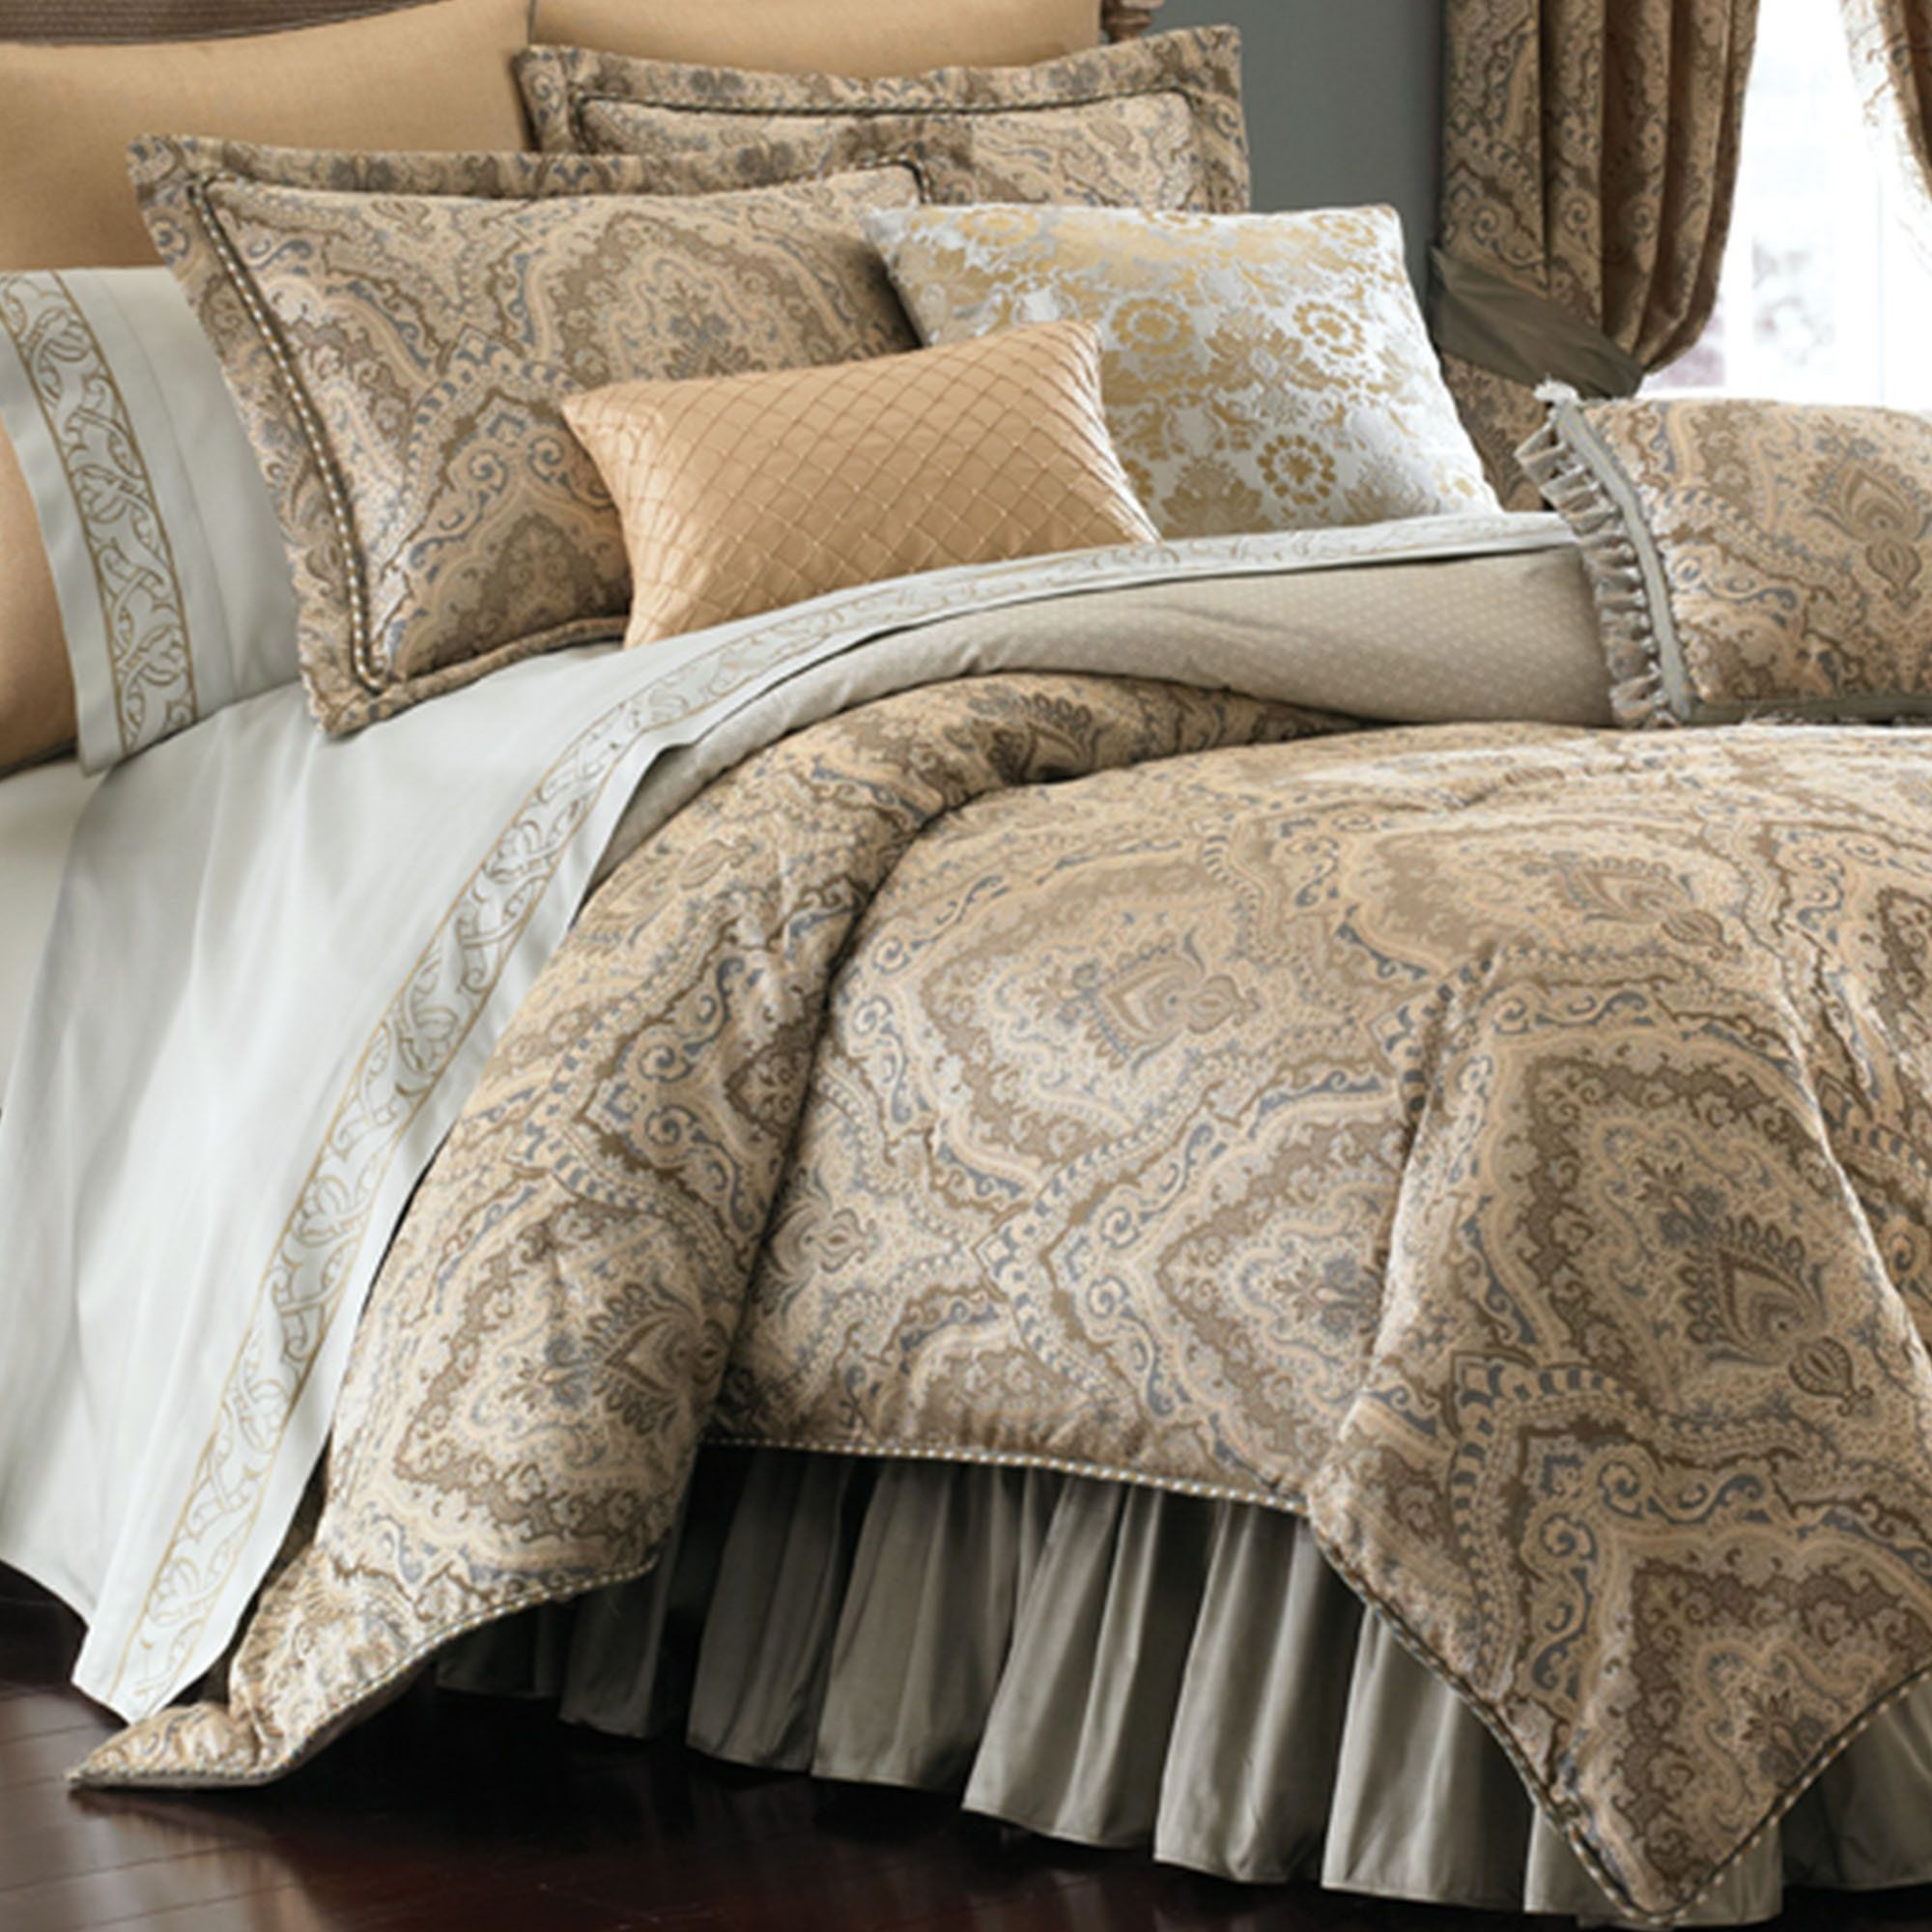 Black And Cream Damask Bedding - Distinction damask comforter bedding by croscill